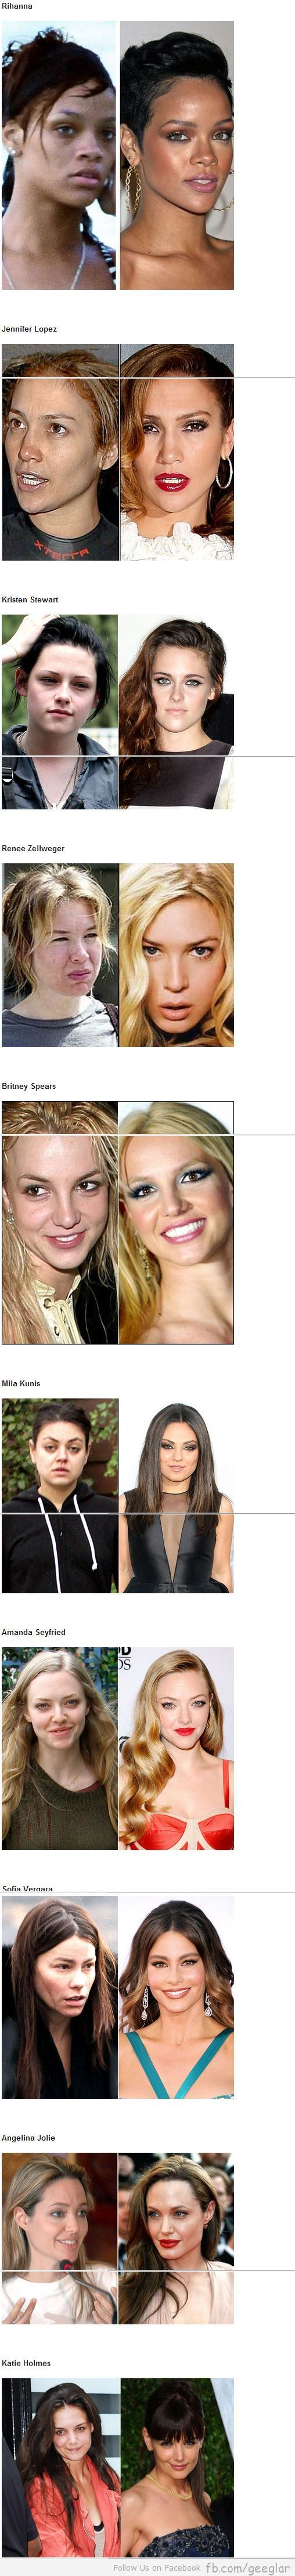 Ummmm, feel a little better about myself... Not sure these are real though... Is it really Mila Kunis?!